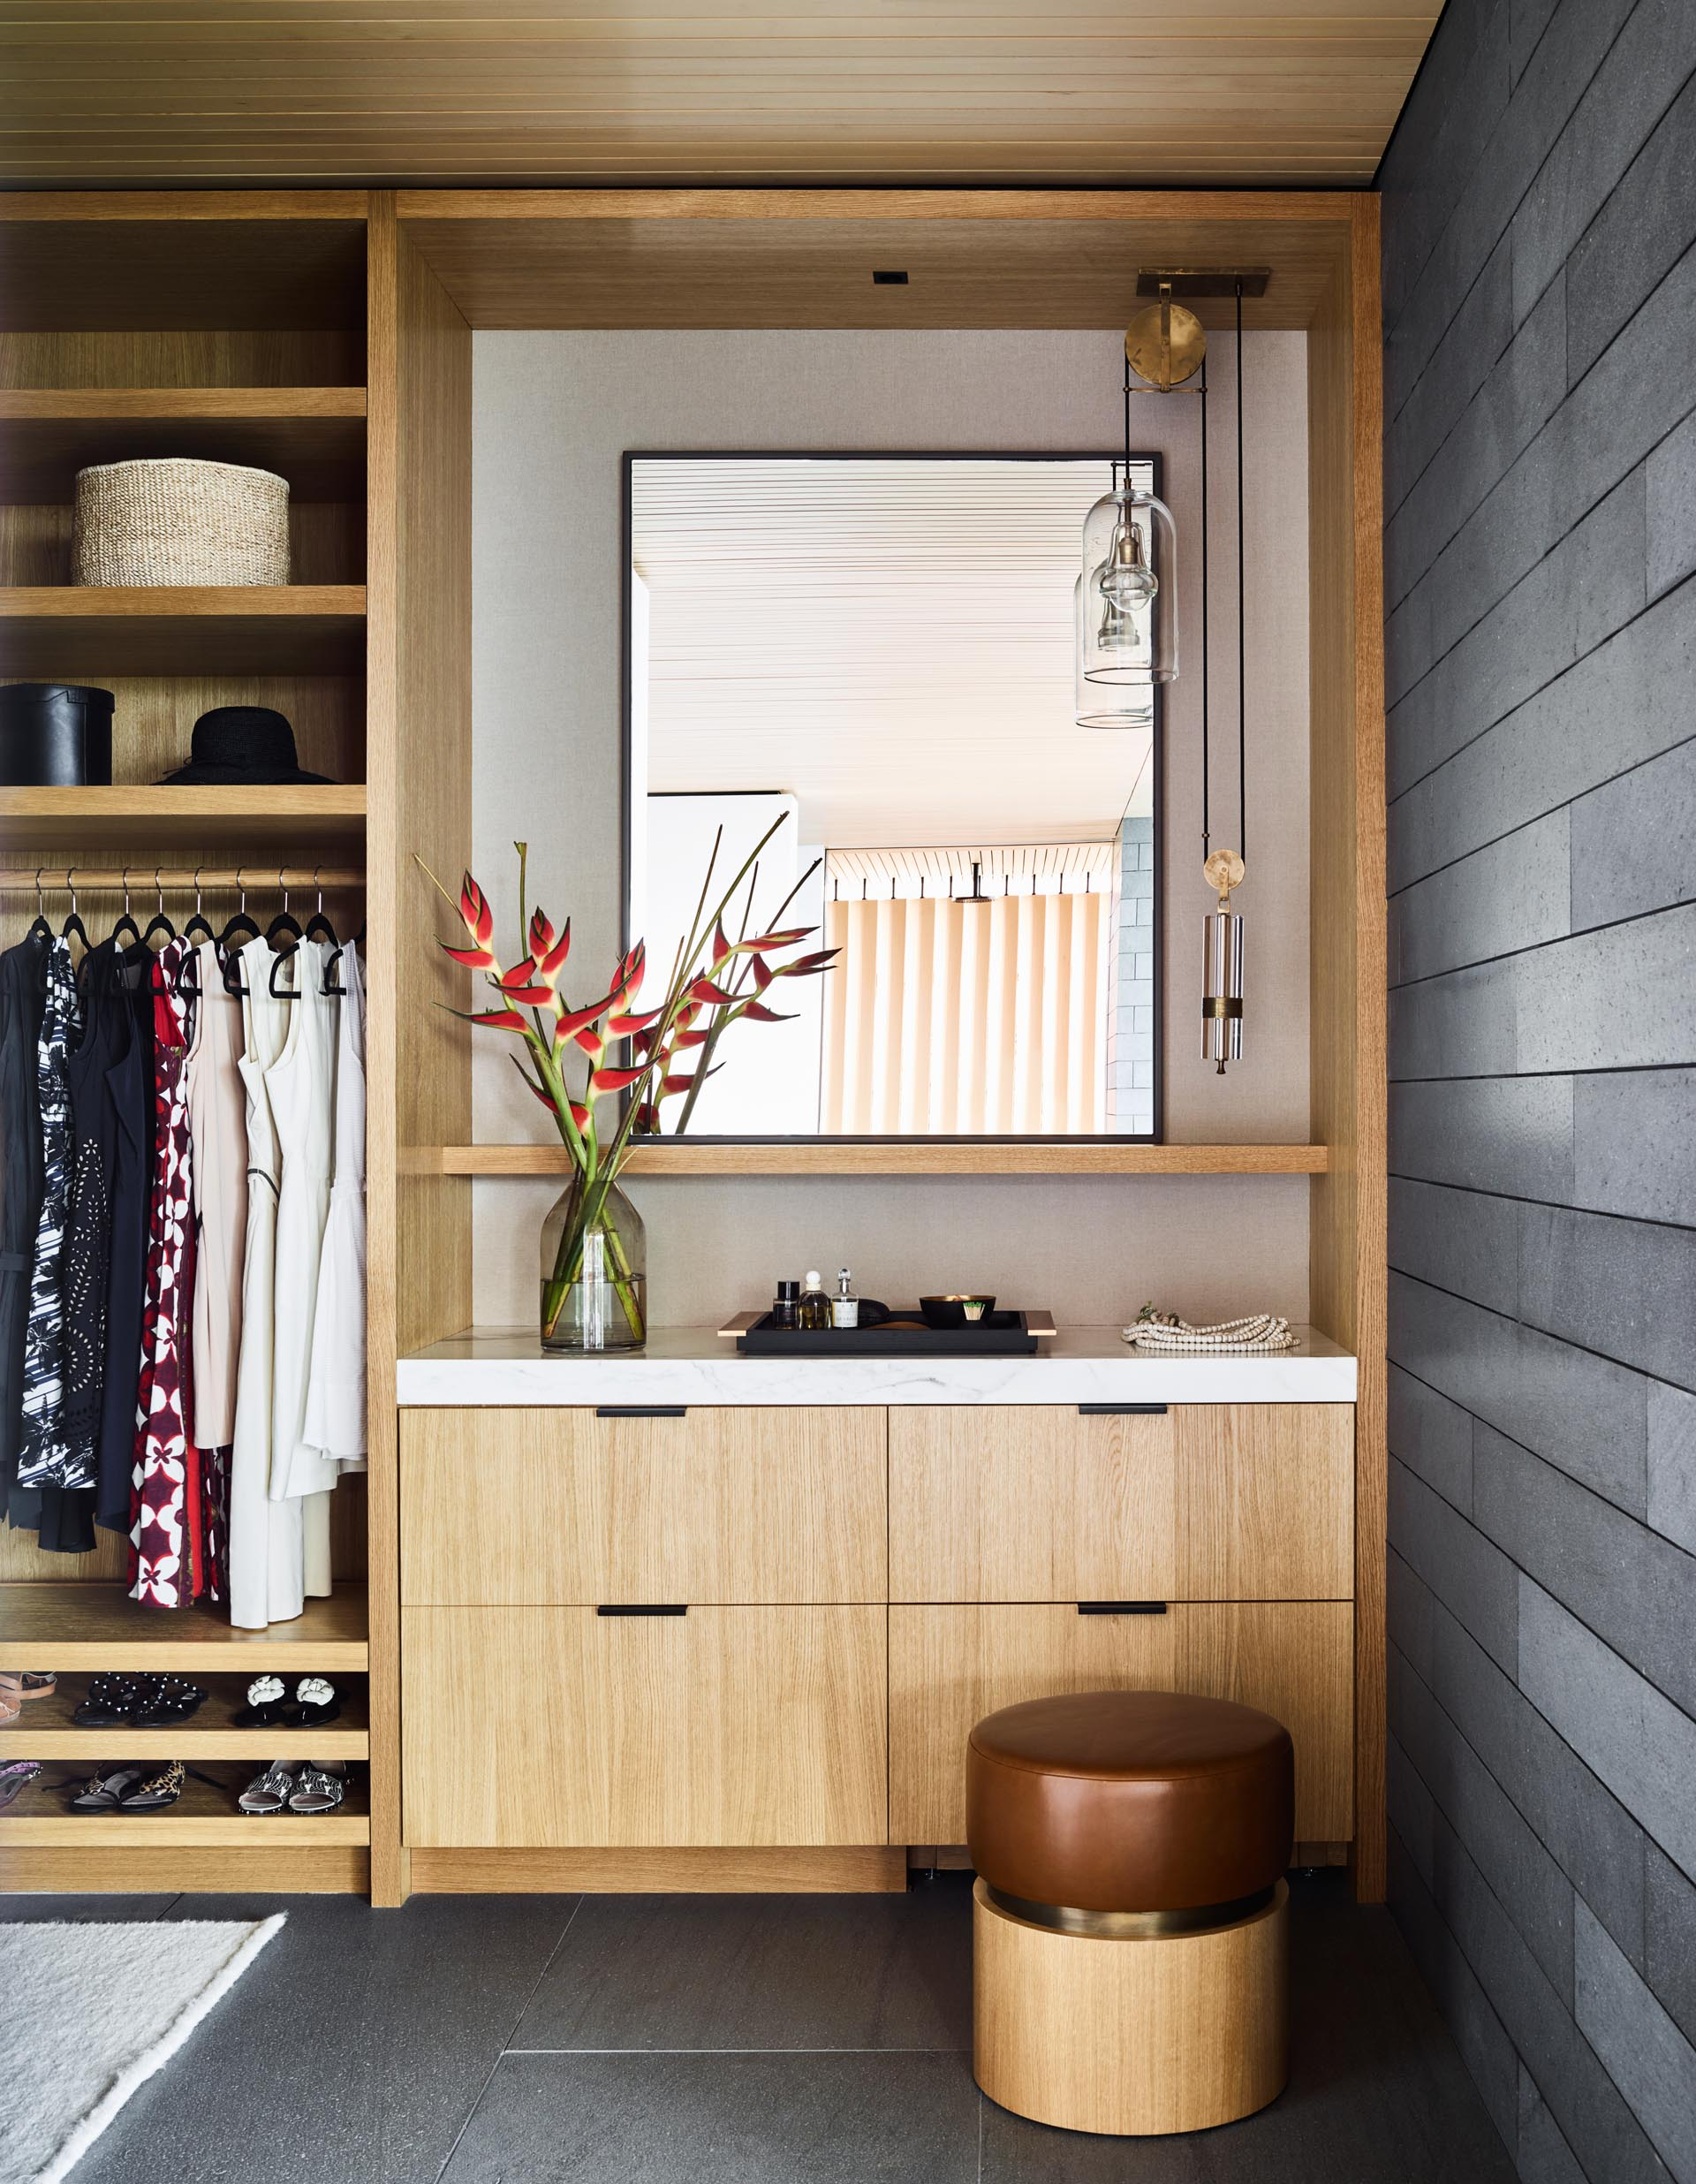 A modern walk-in closet with a vanity area, drawers, shelving, and space for hanging clothes.